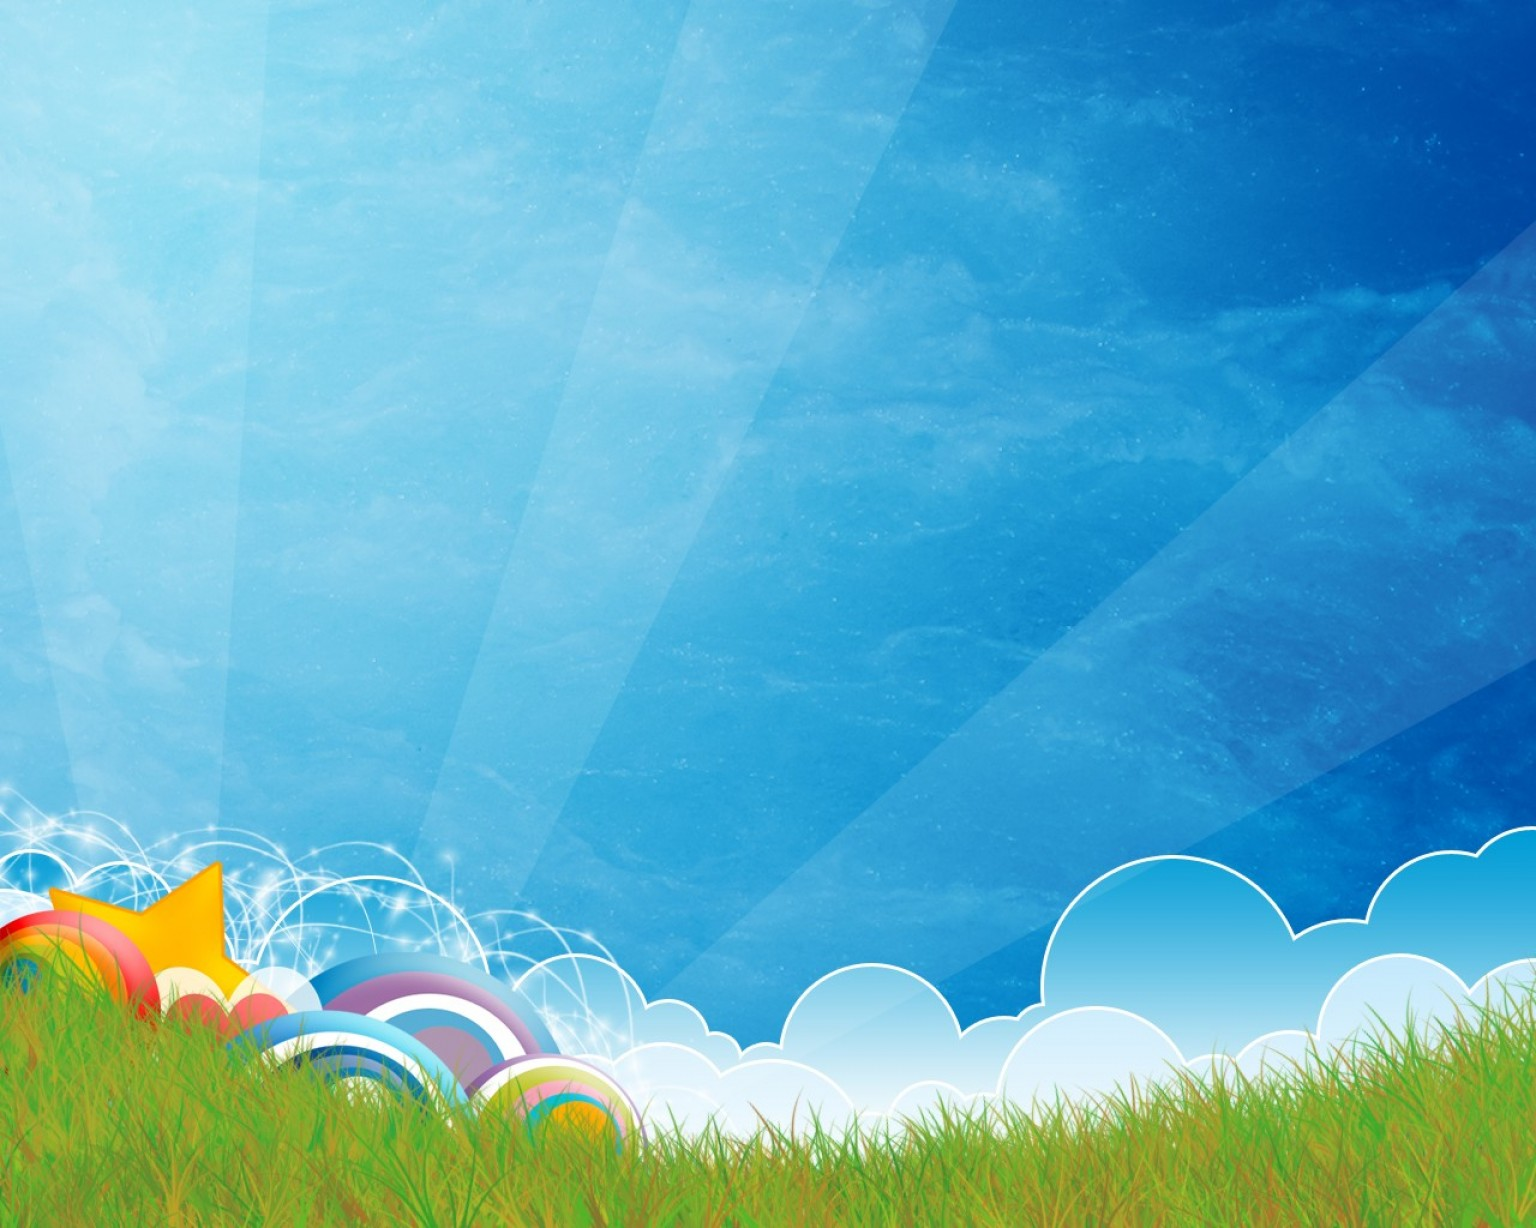 Clouds Backgrounds Vector: Vector Grass Star Light Clouds Backgrounds